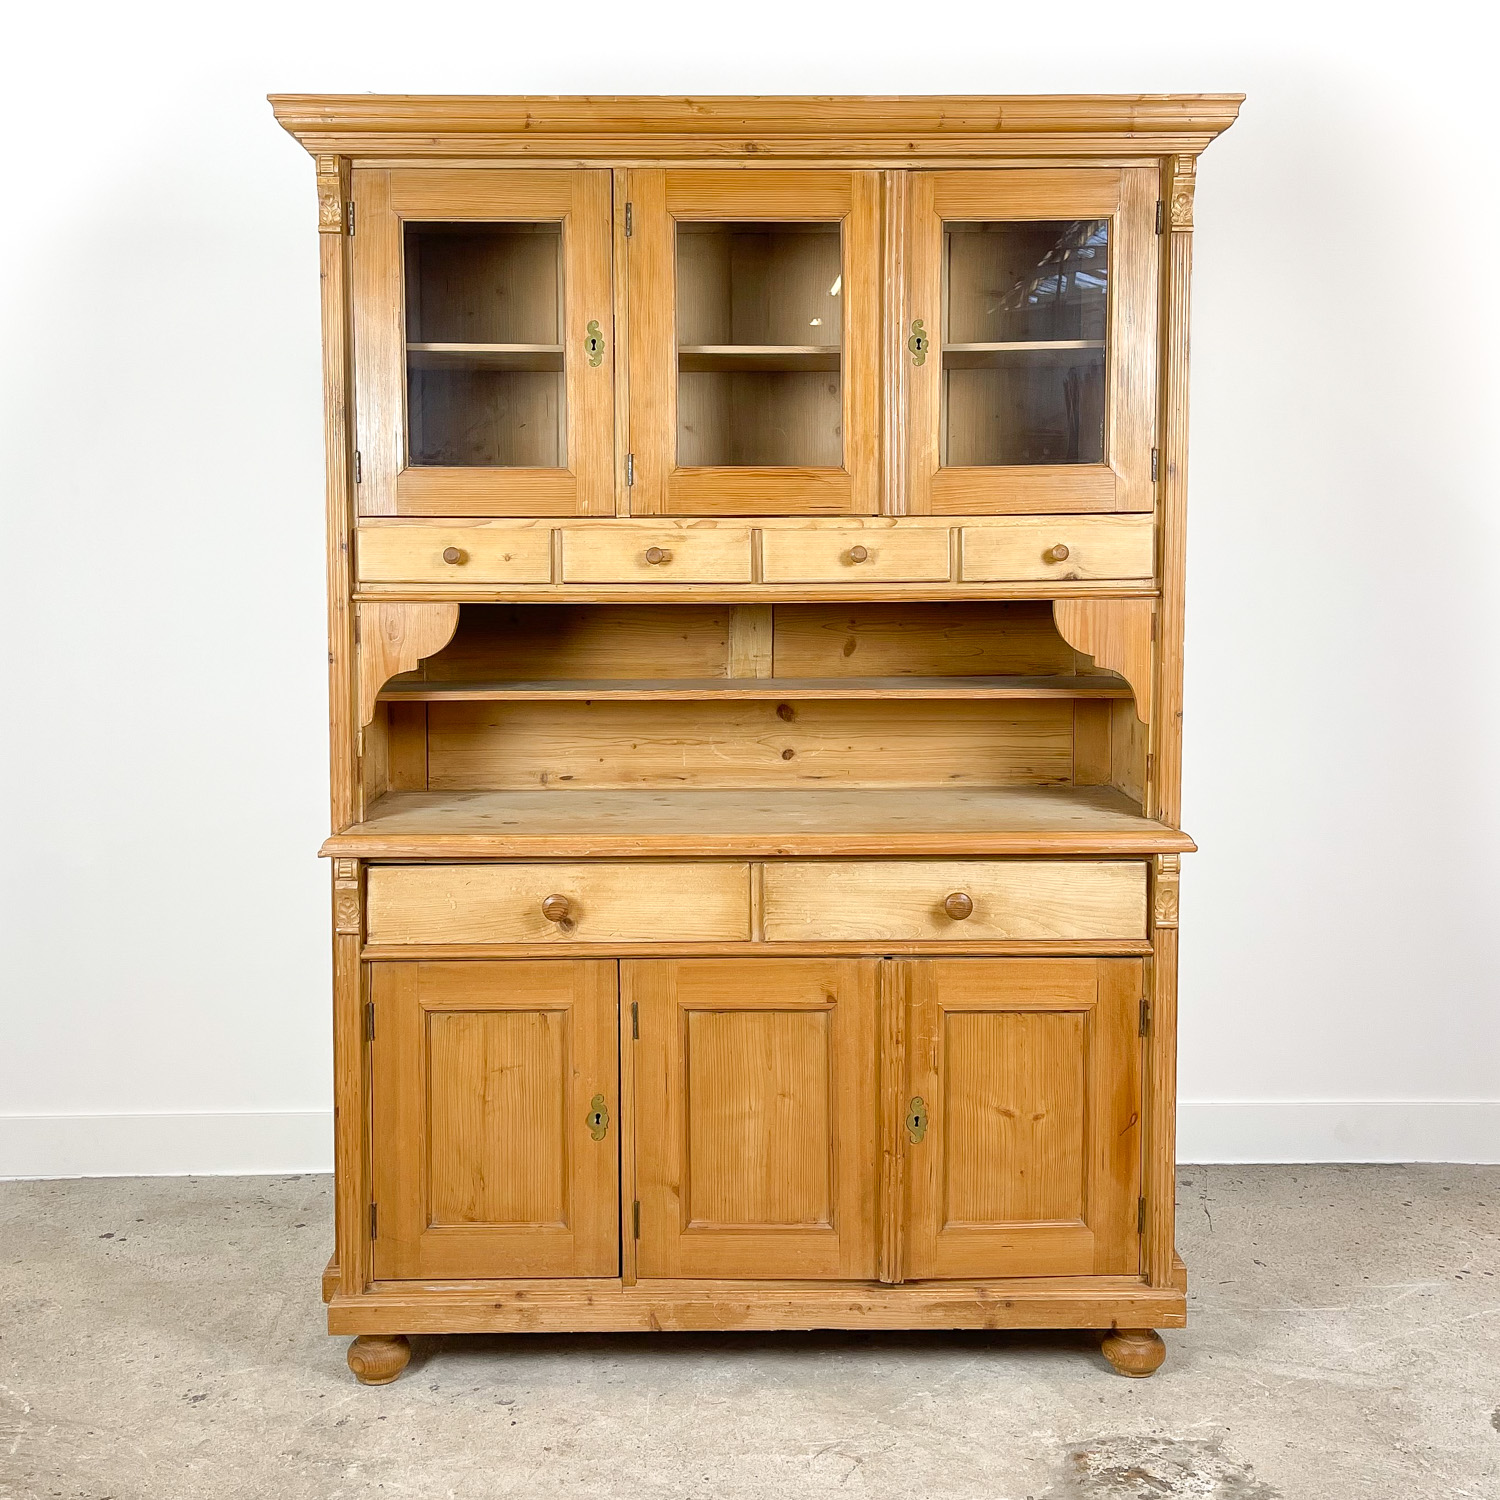 Pine wooden kitchen display cabinet